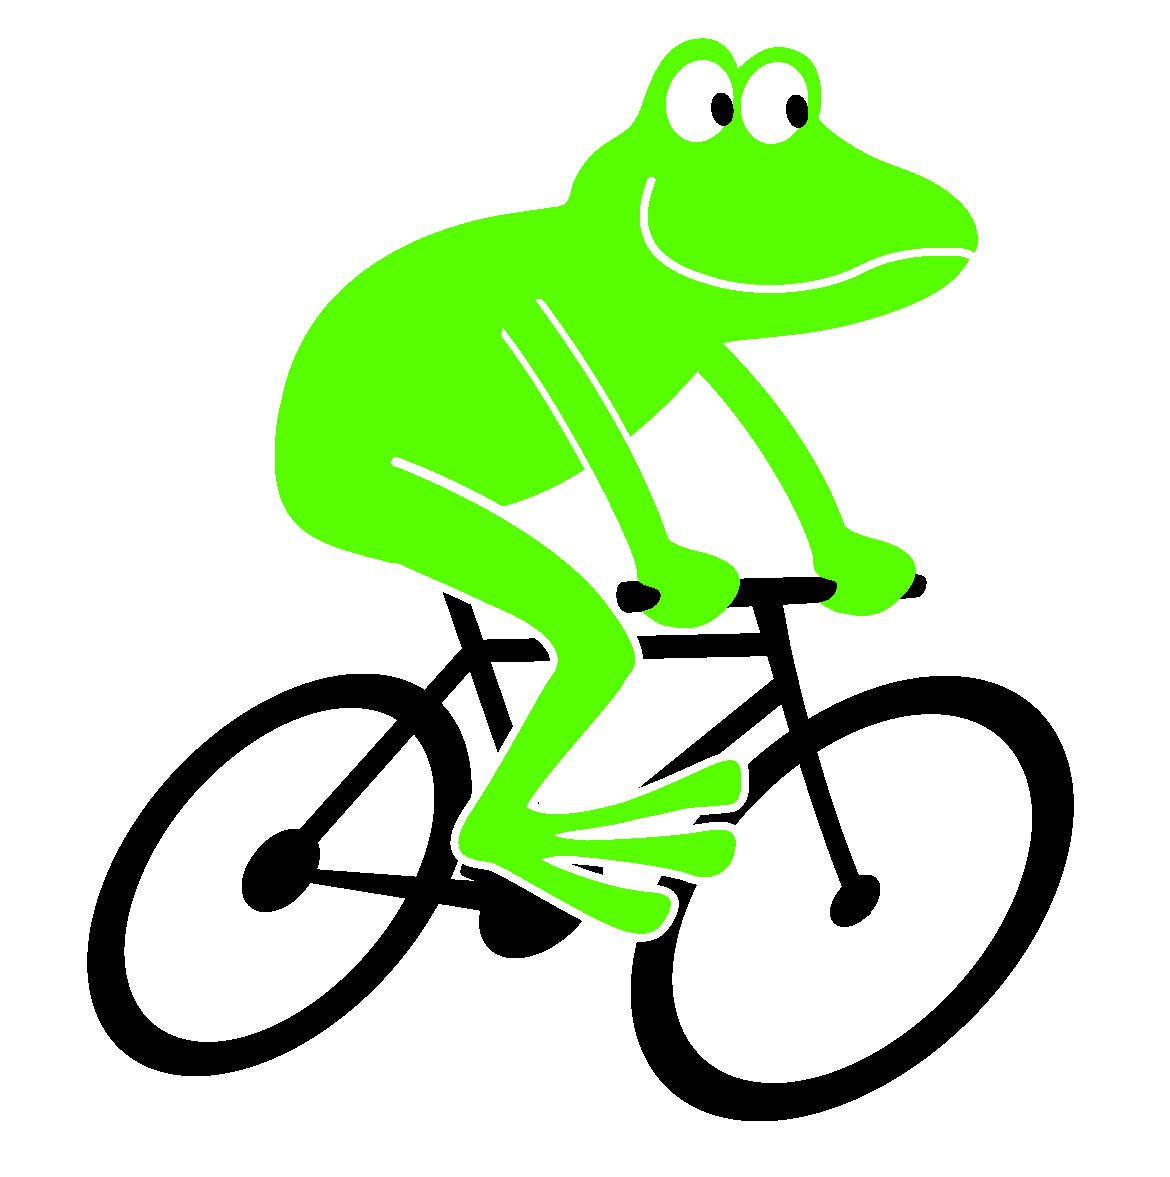 Bike clipart hat In Animals Cath in The